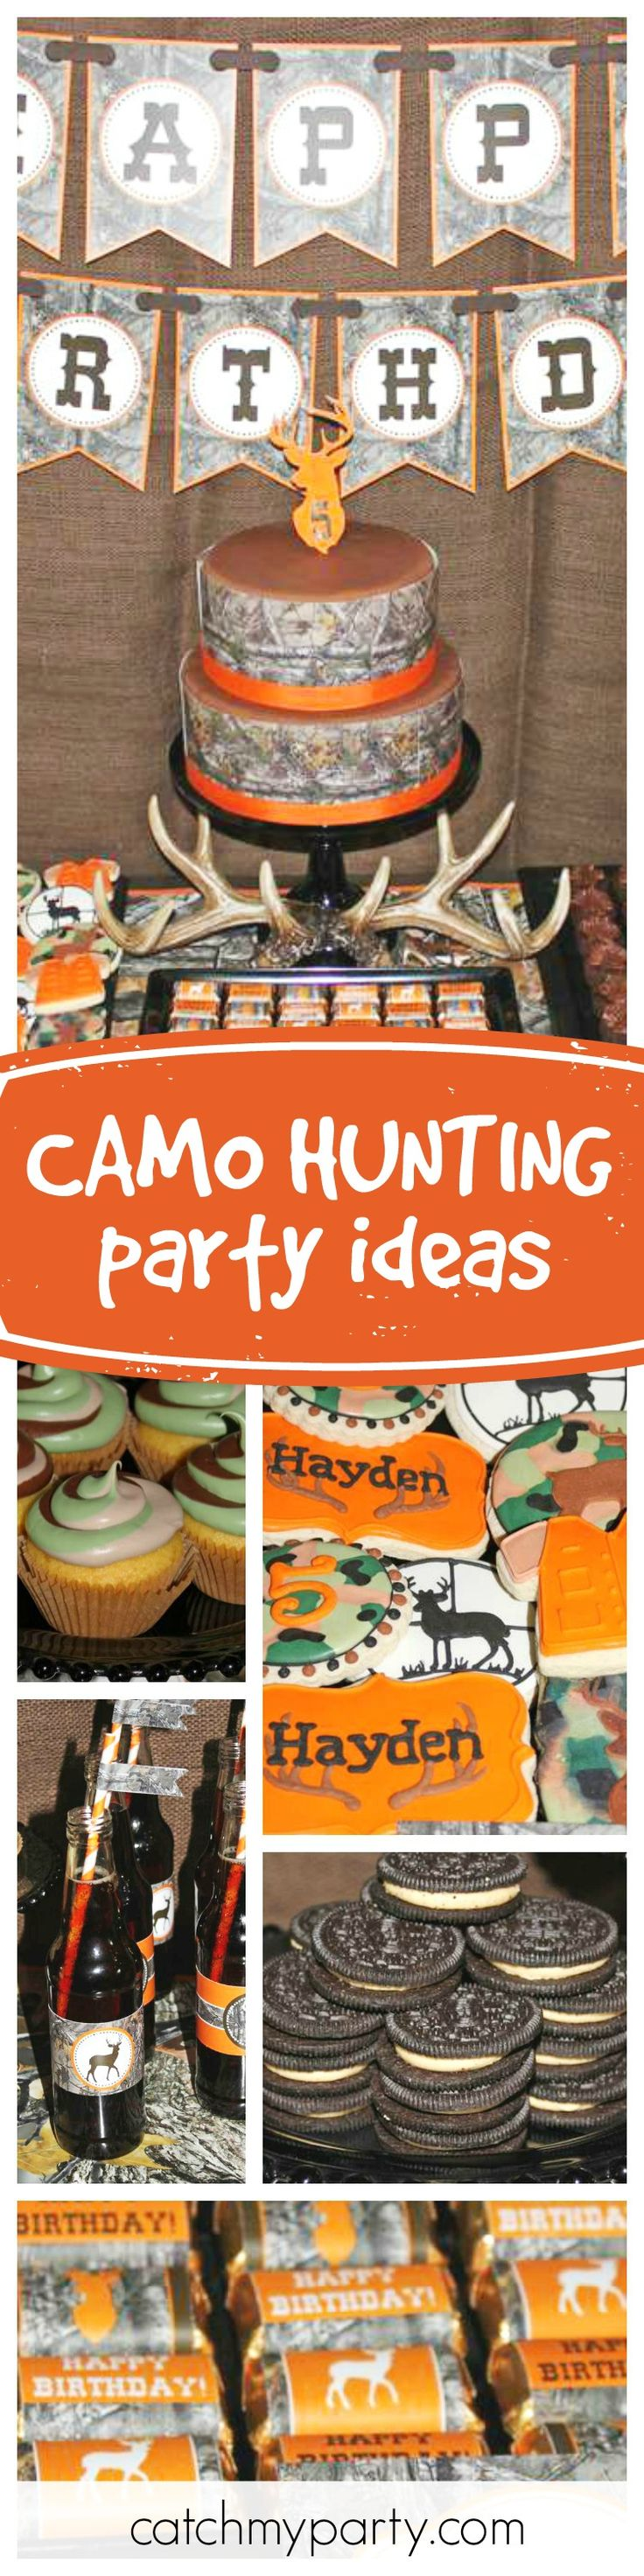 Check out this great camo hunting birthday party. Love the themed cookies! See more party ideas and share yours at CatchMyParty.com